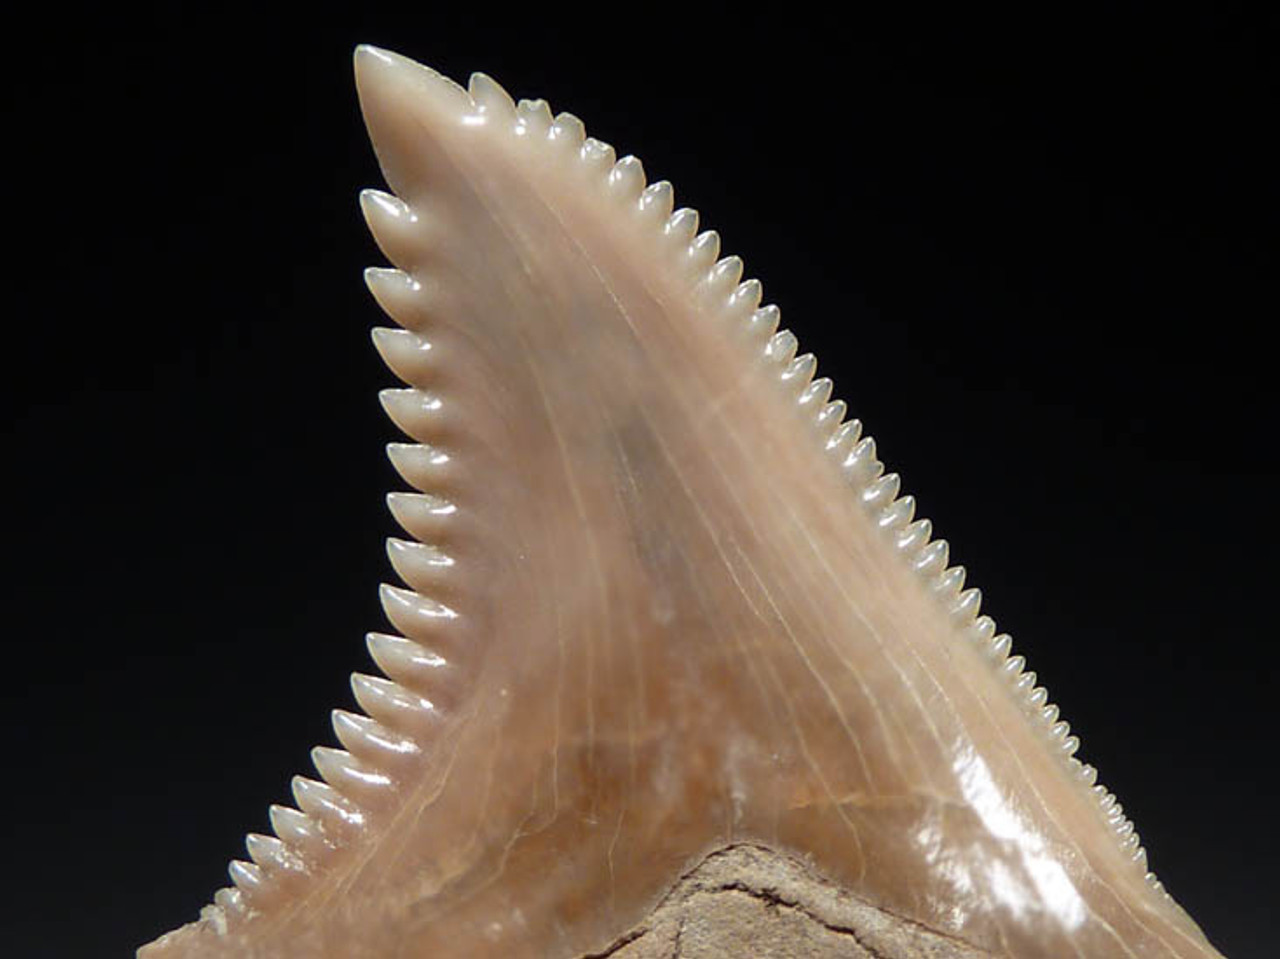 SH18-016 - CHOICE CREAM-COLORED HEMIPRISTIS SERRA ( EXTINCT SNAGGLETOOTH SHARK ) TOOTH